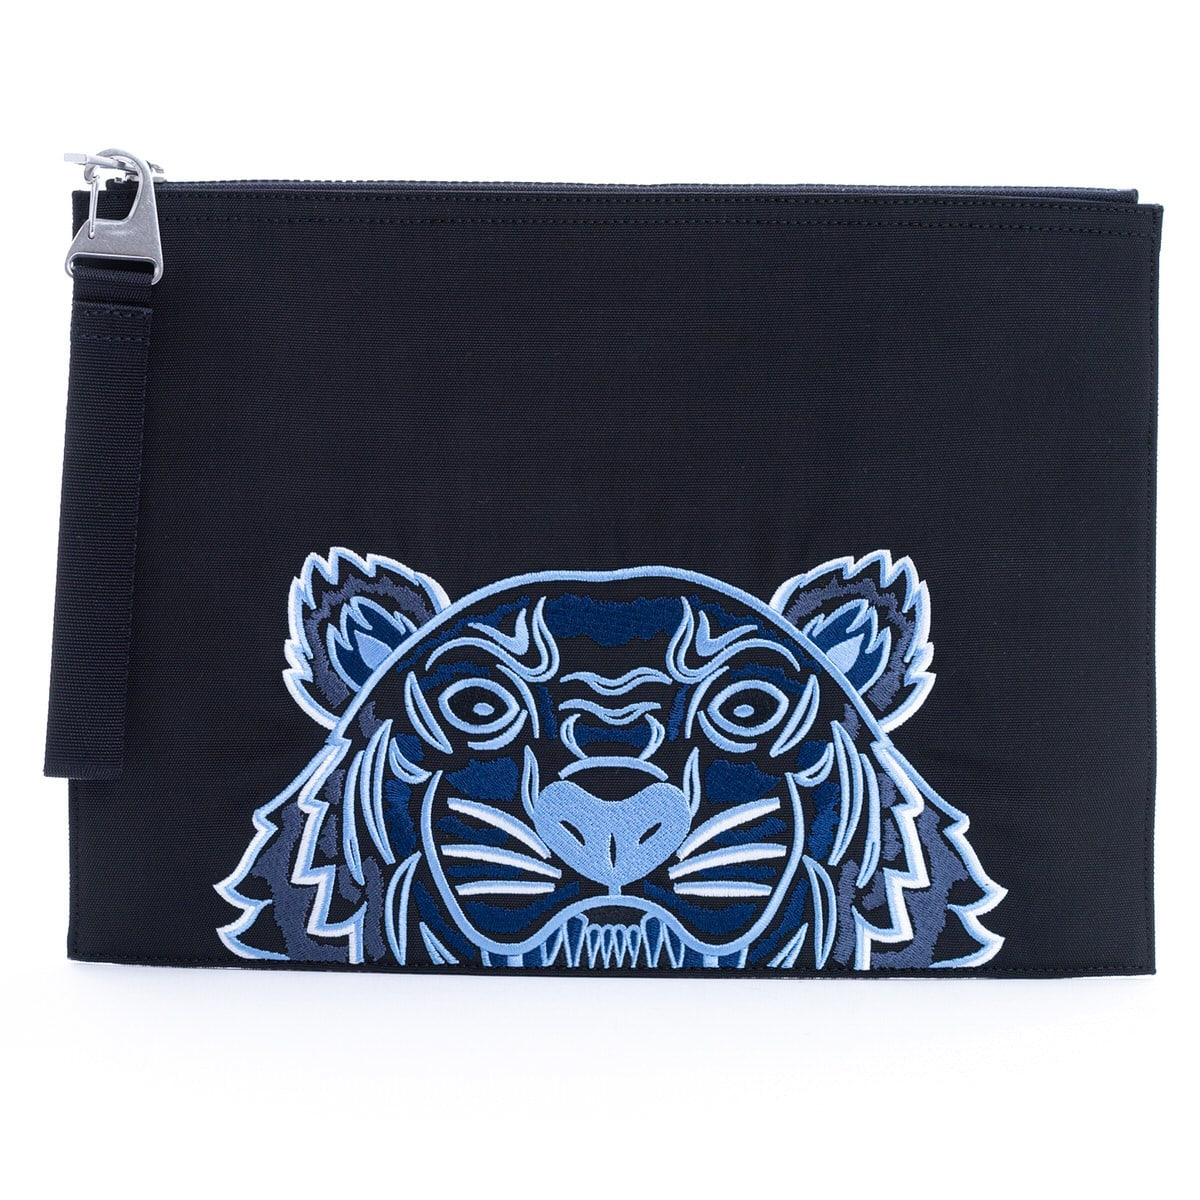 Kenzo Bags BRIEFCASE